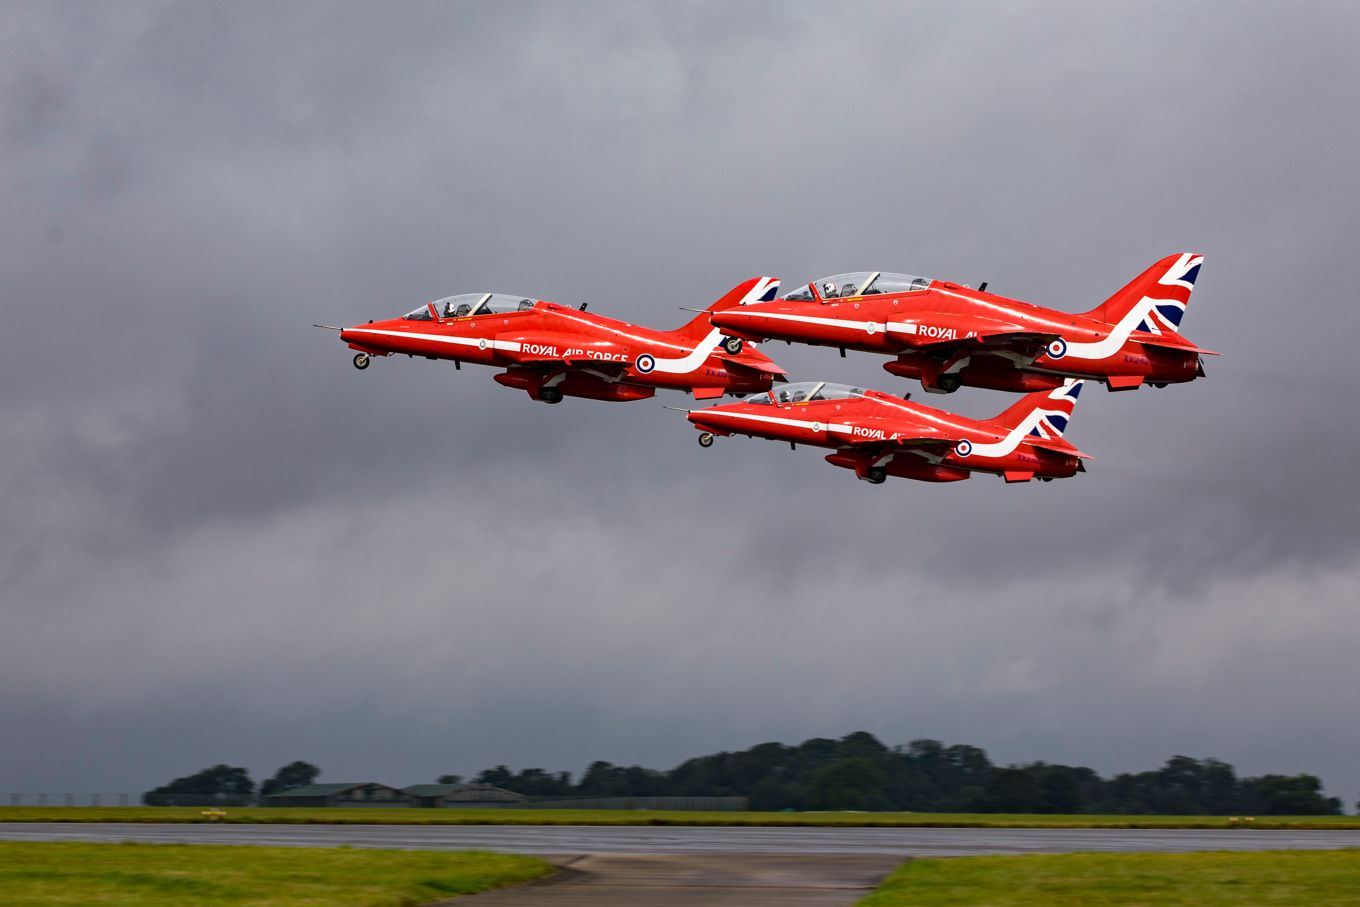 The Red Arrows departing RAF Scampton earlier today. Picture by Corporal Graham Taylor.